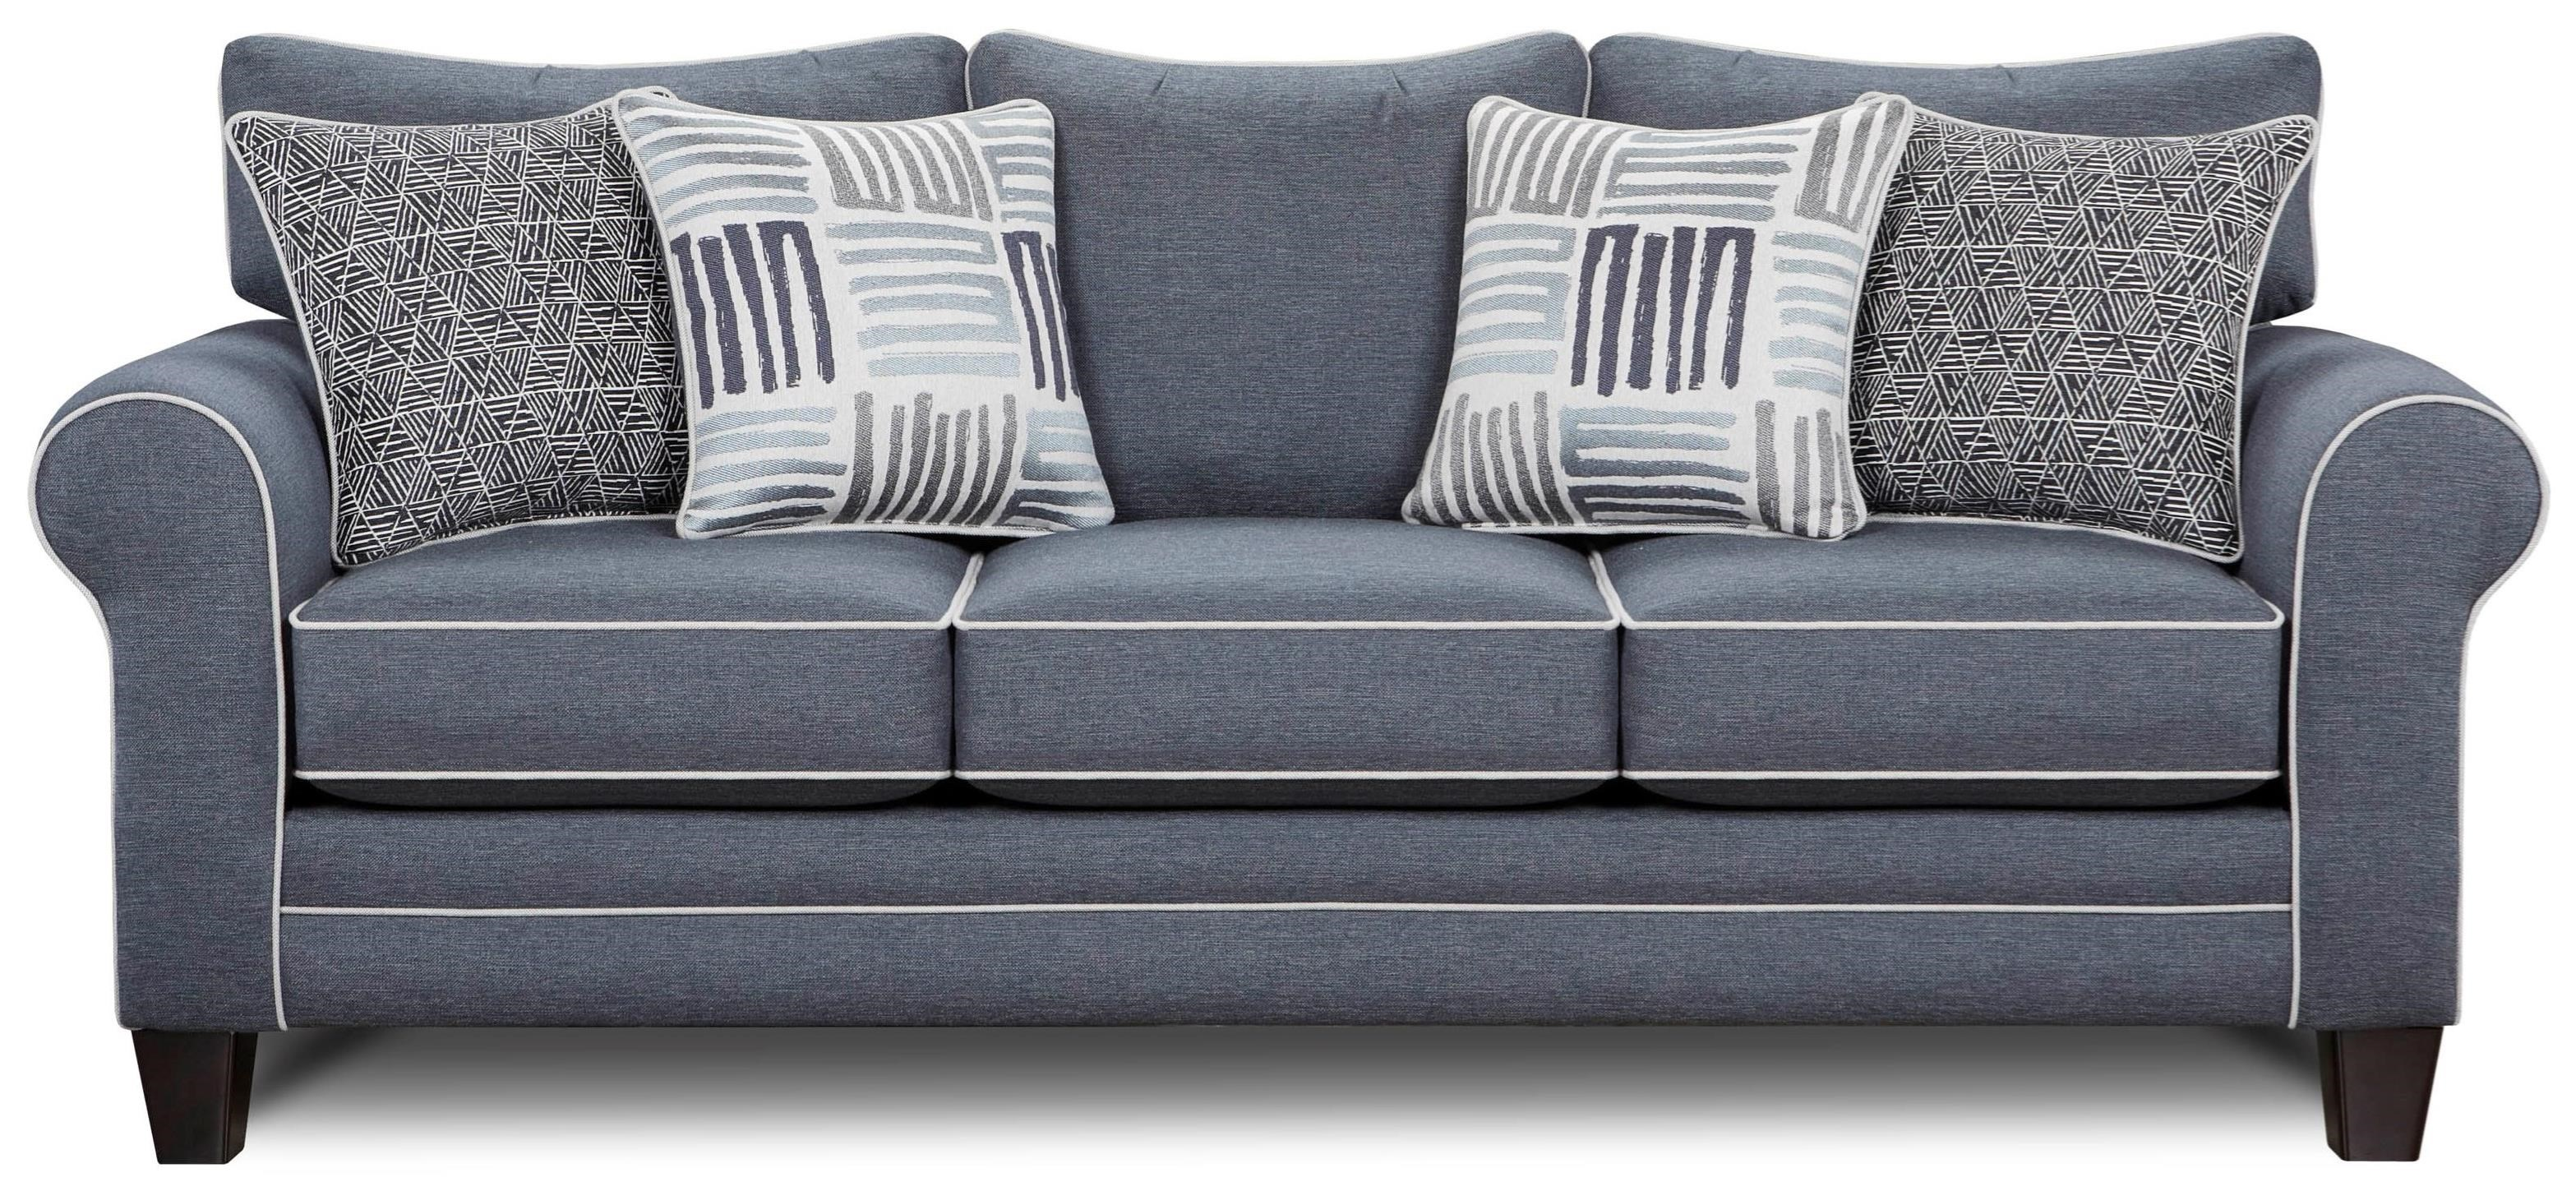 VFM Signature 1140 Sofa - Item Number: 1140-CWGrande Denim